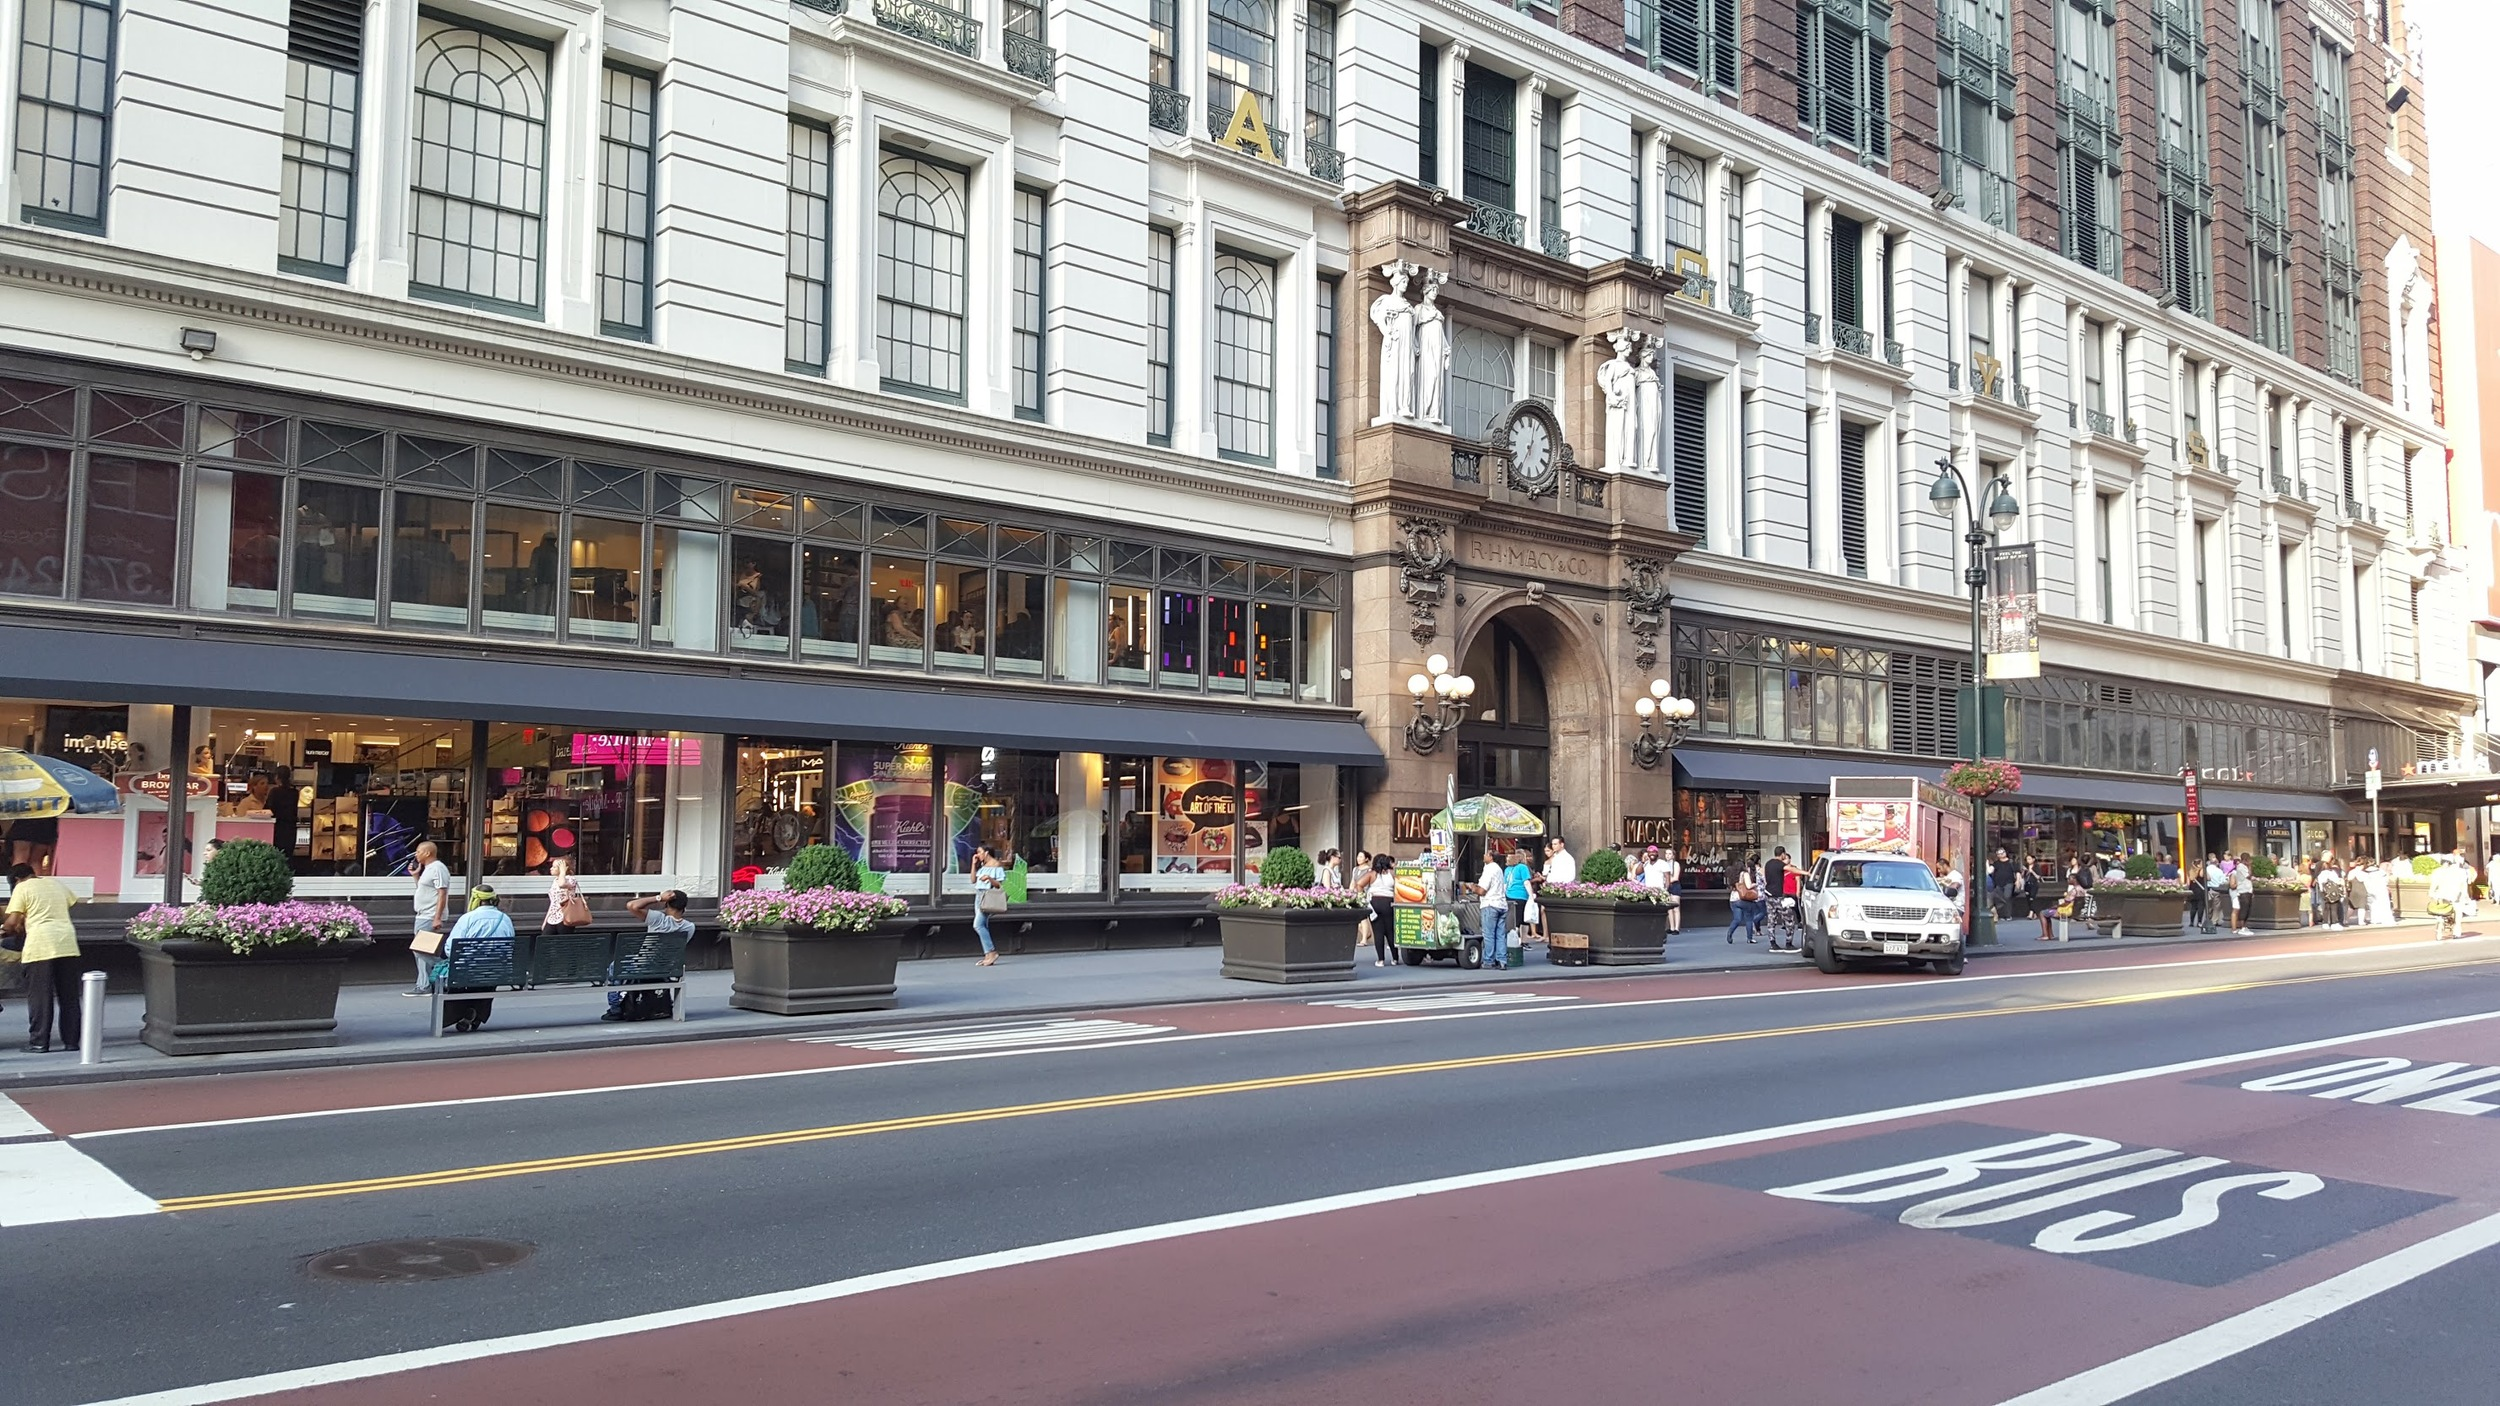 The 34th Street side of Macy's.